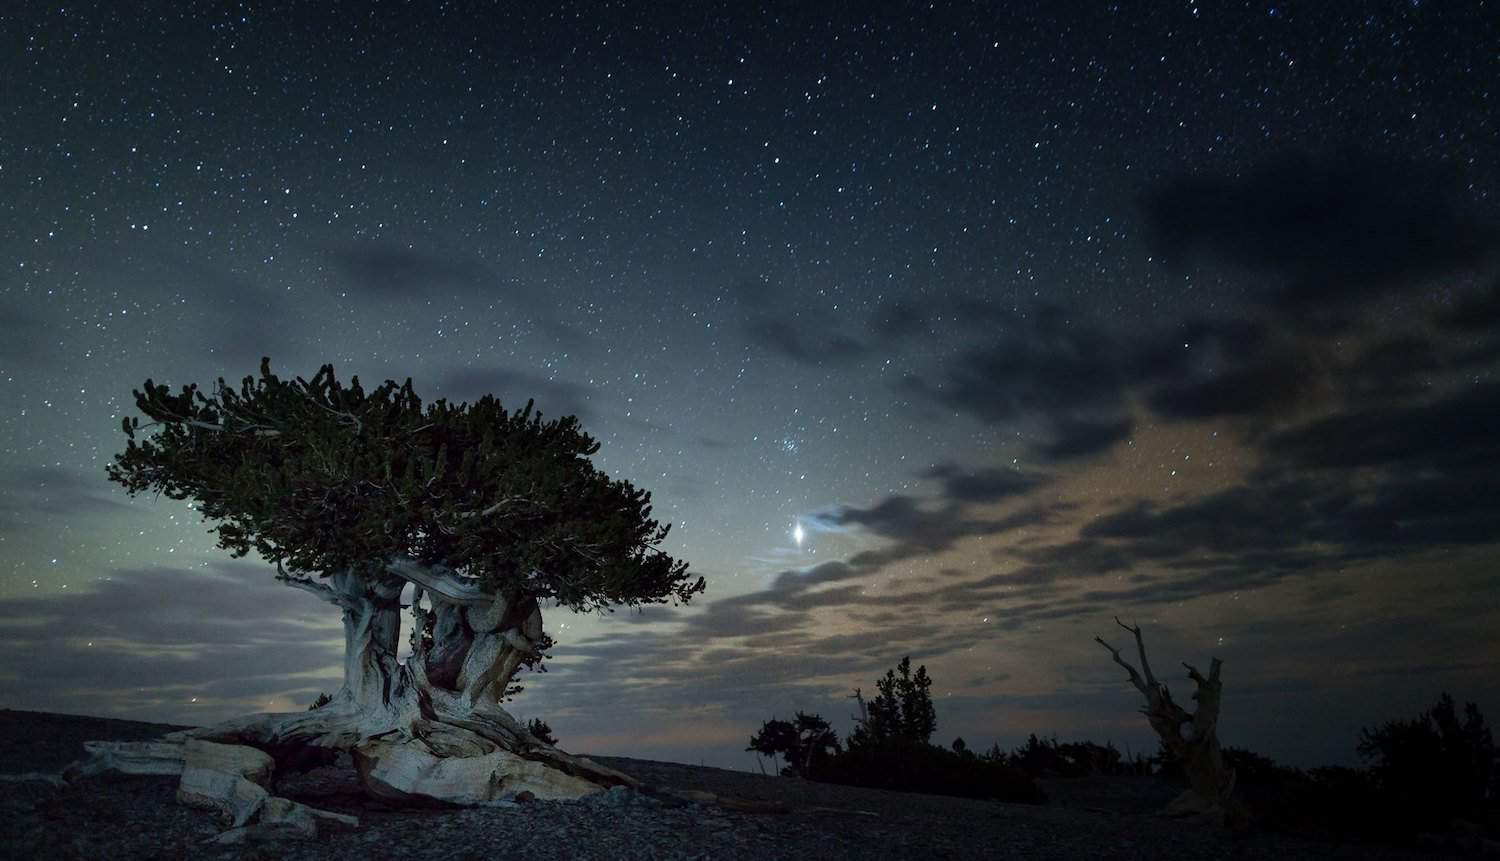 Best National Parks for Stargazing - Great Basin